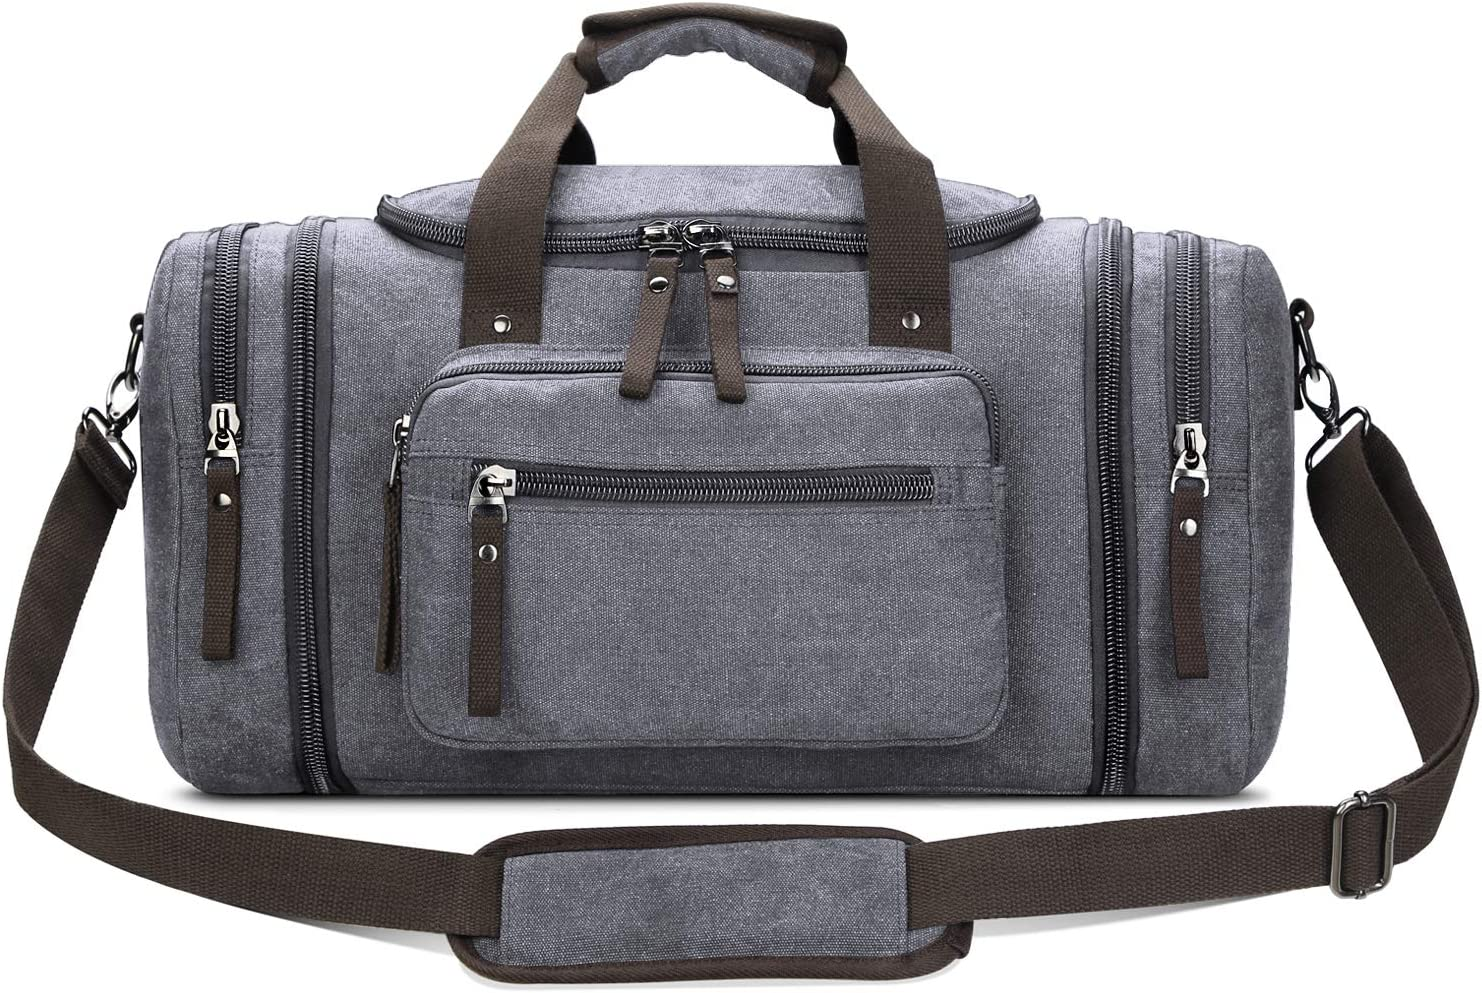 Toupons Canvas Duffel Bag Small Carry-on Bag Overnight Bag Weekender Bag for Men (Grey)